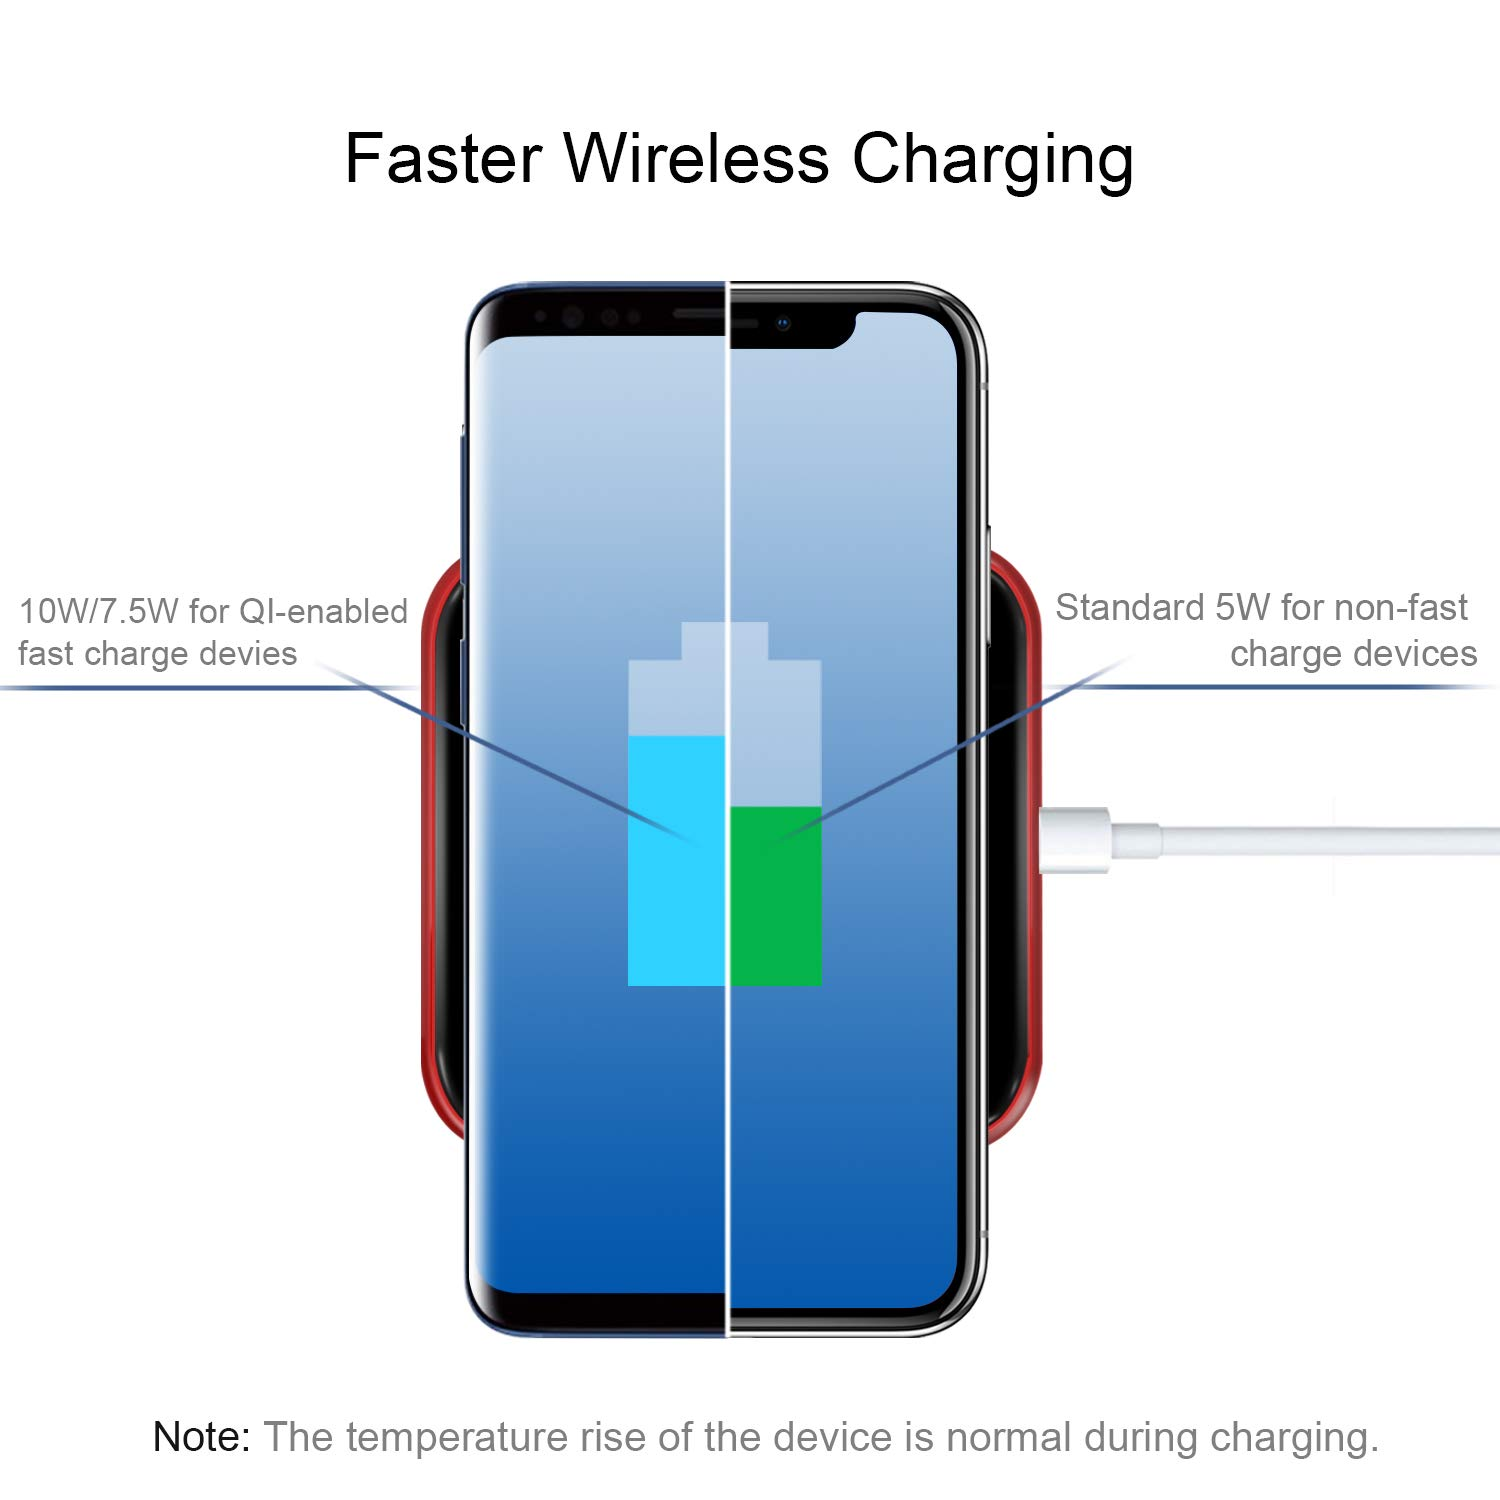 Wireless Charger , Ultra-Slim Fast Charging 7.5w for iPhone X, iPhone 8/8 Plus, 10w for Samsung S9 / S9 + / S8 / S8 + / S7 / Note 8, Inductive Charging Station Qi Charger Power Wireless Pad (AC adapter not included)